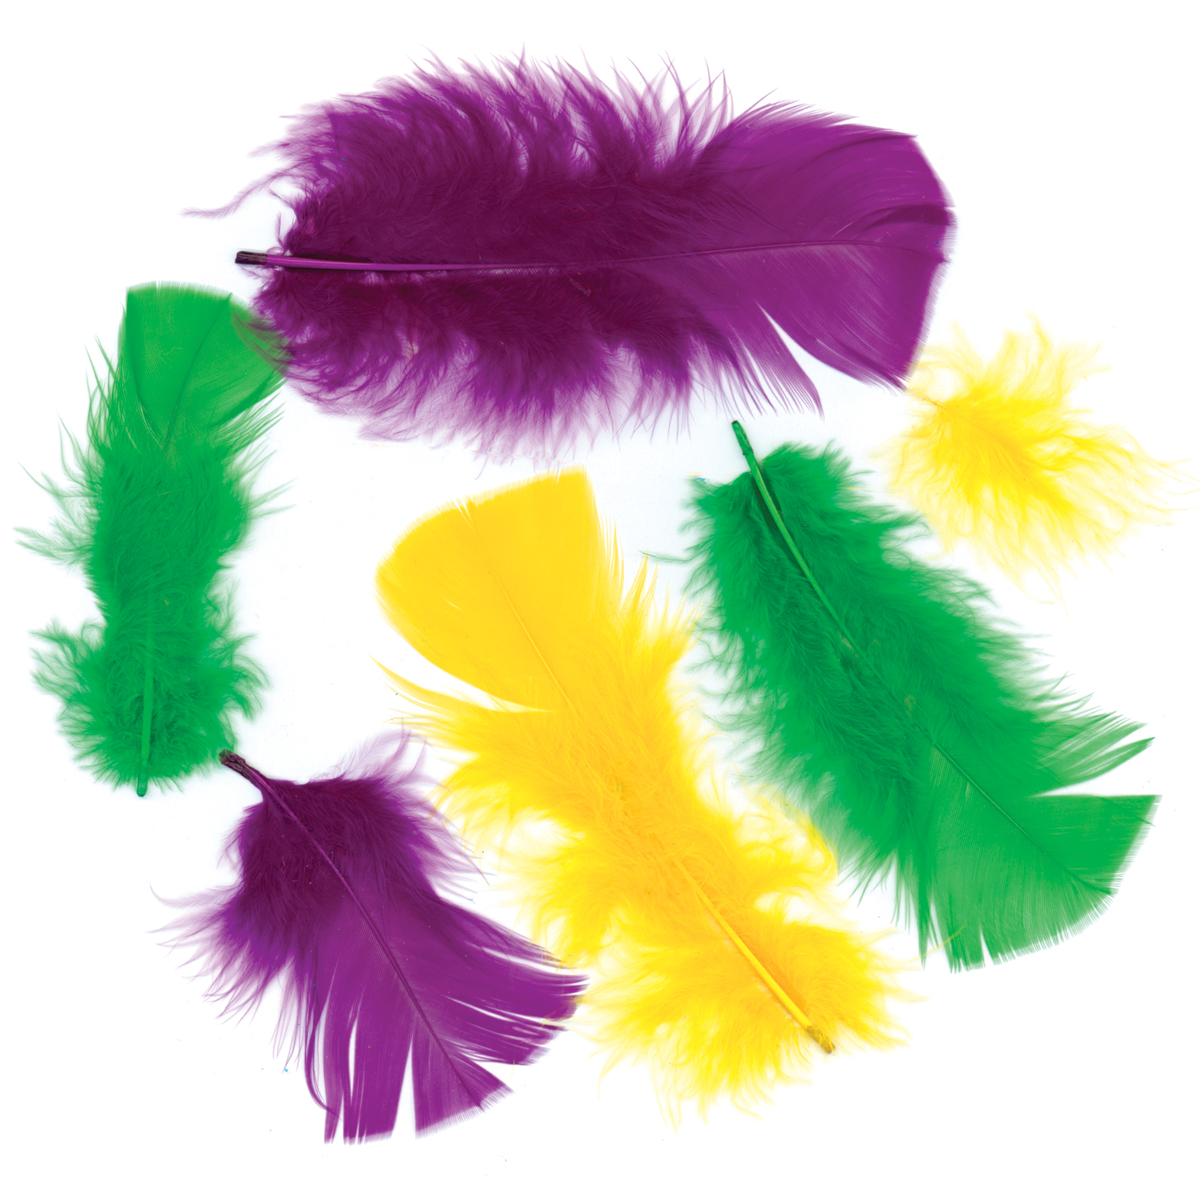 Turkey Plumage Feathers .5oz-Purple, Gold & Green